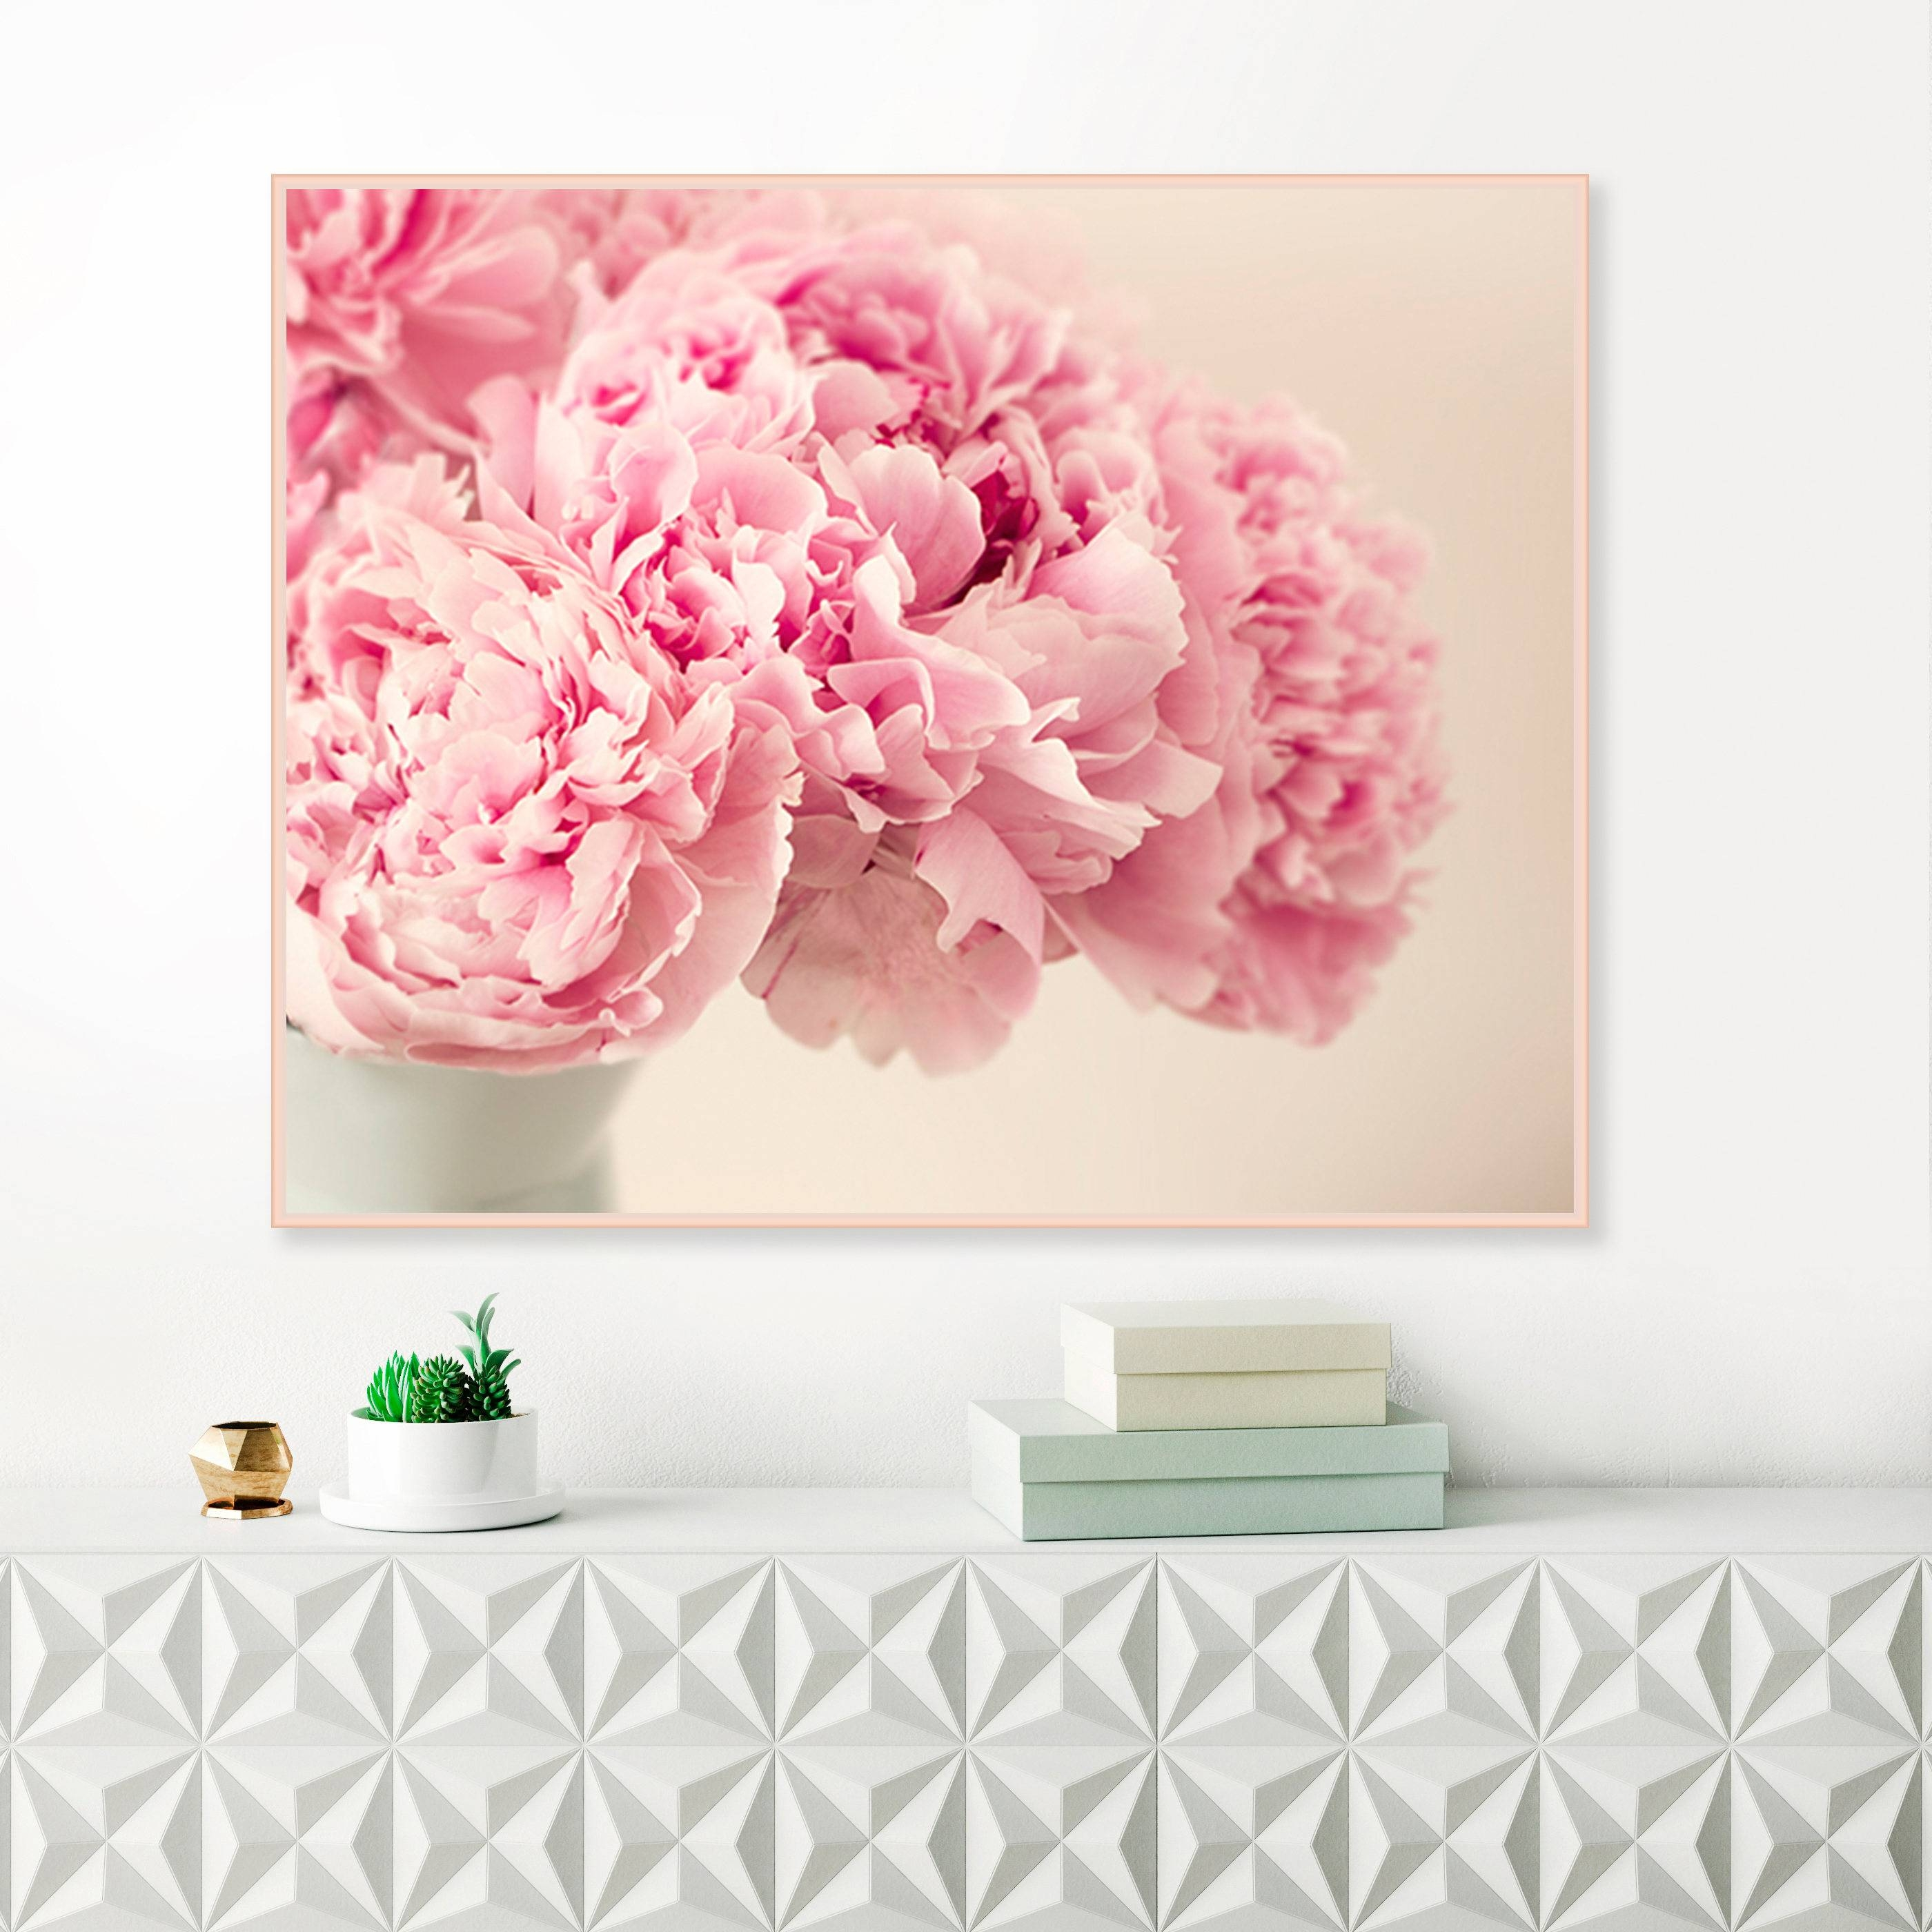 Pink Peonies Photography, Pink Flower Prints, Blush Pink Wall Art Intended For Latest Pink Flower Wall Art (View 16 of 20)